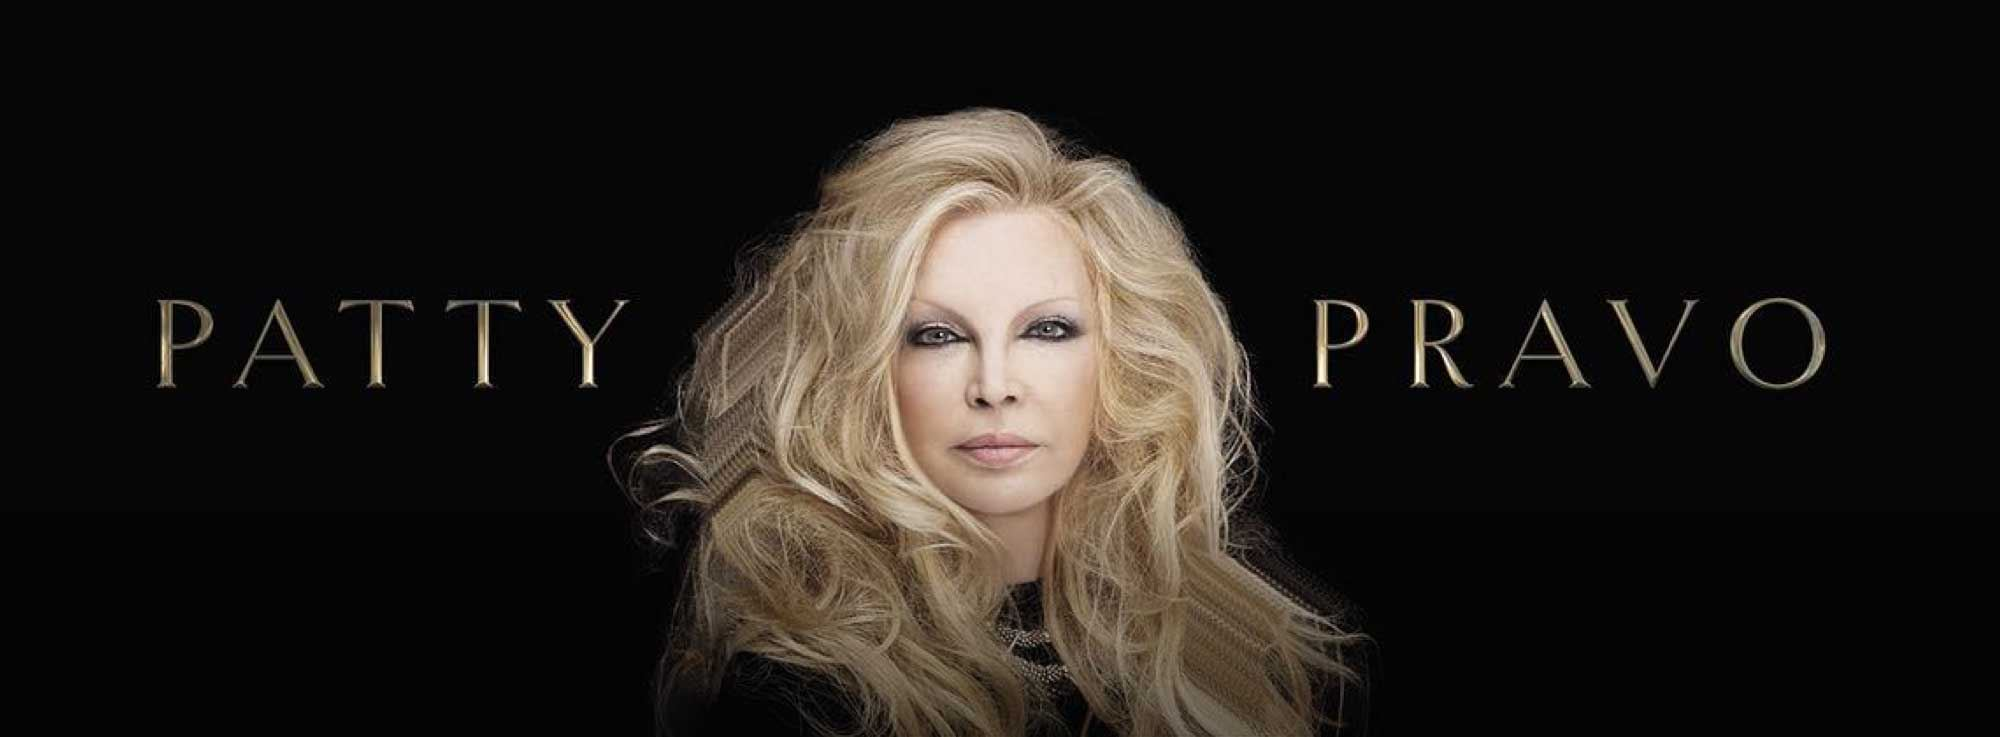 Bari e Lecce: Patty Pravo in concerto